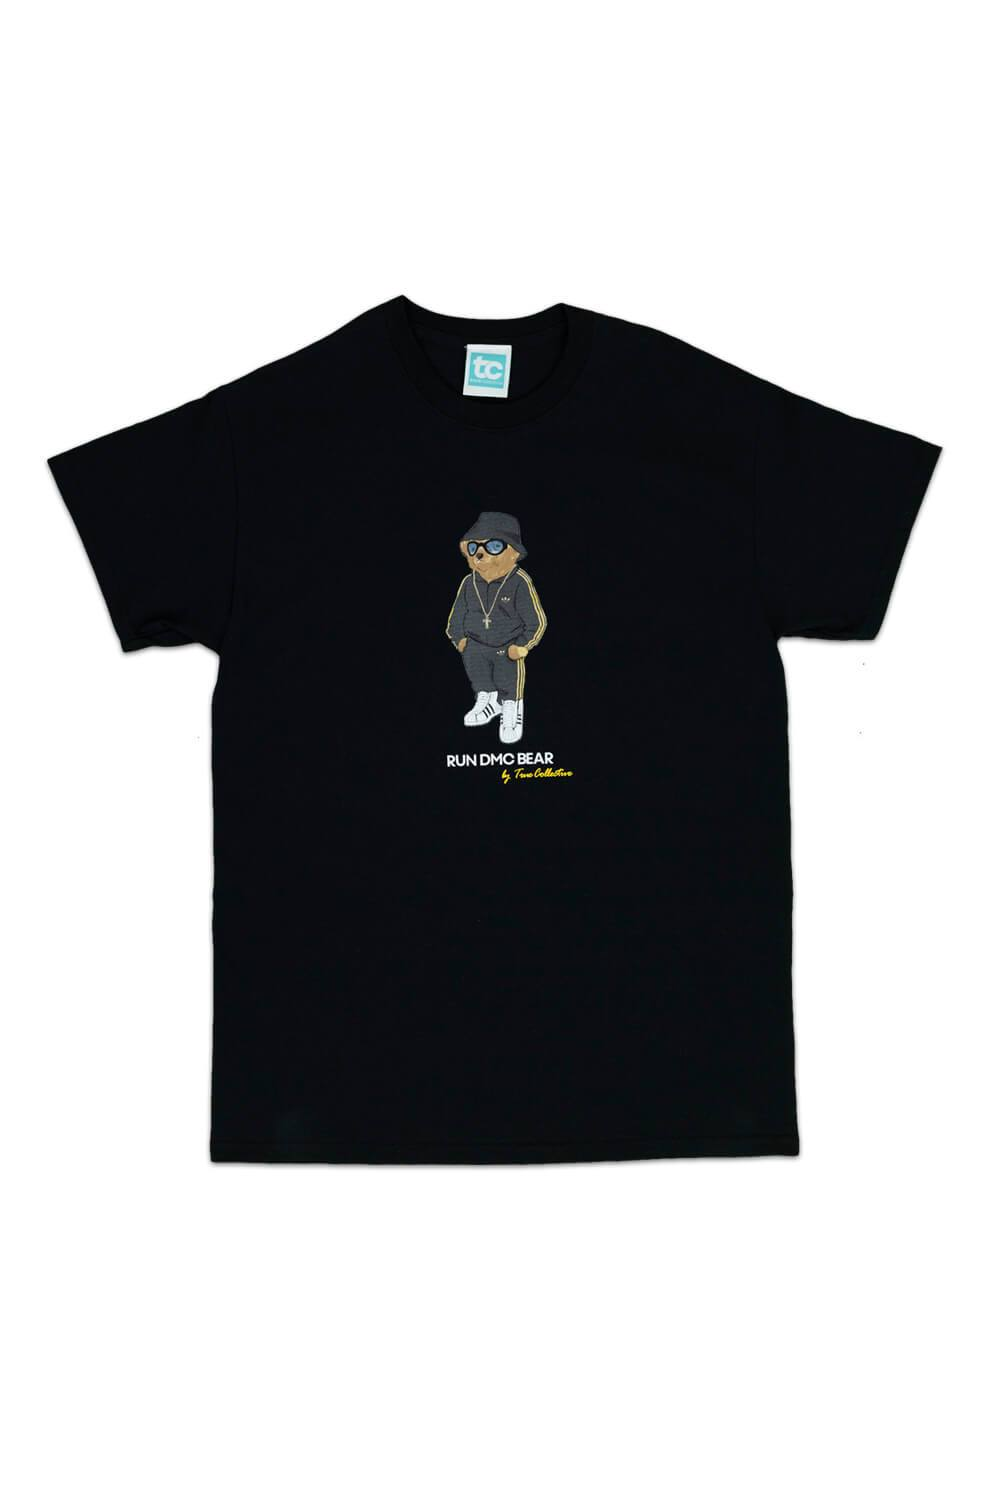 Run DMC Bear T-shirt Black